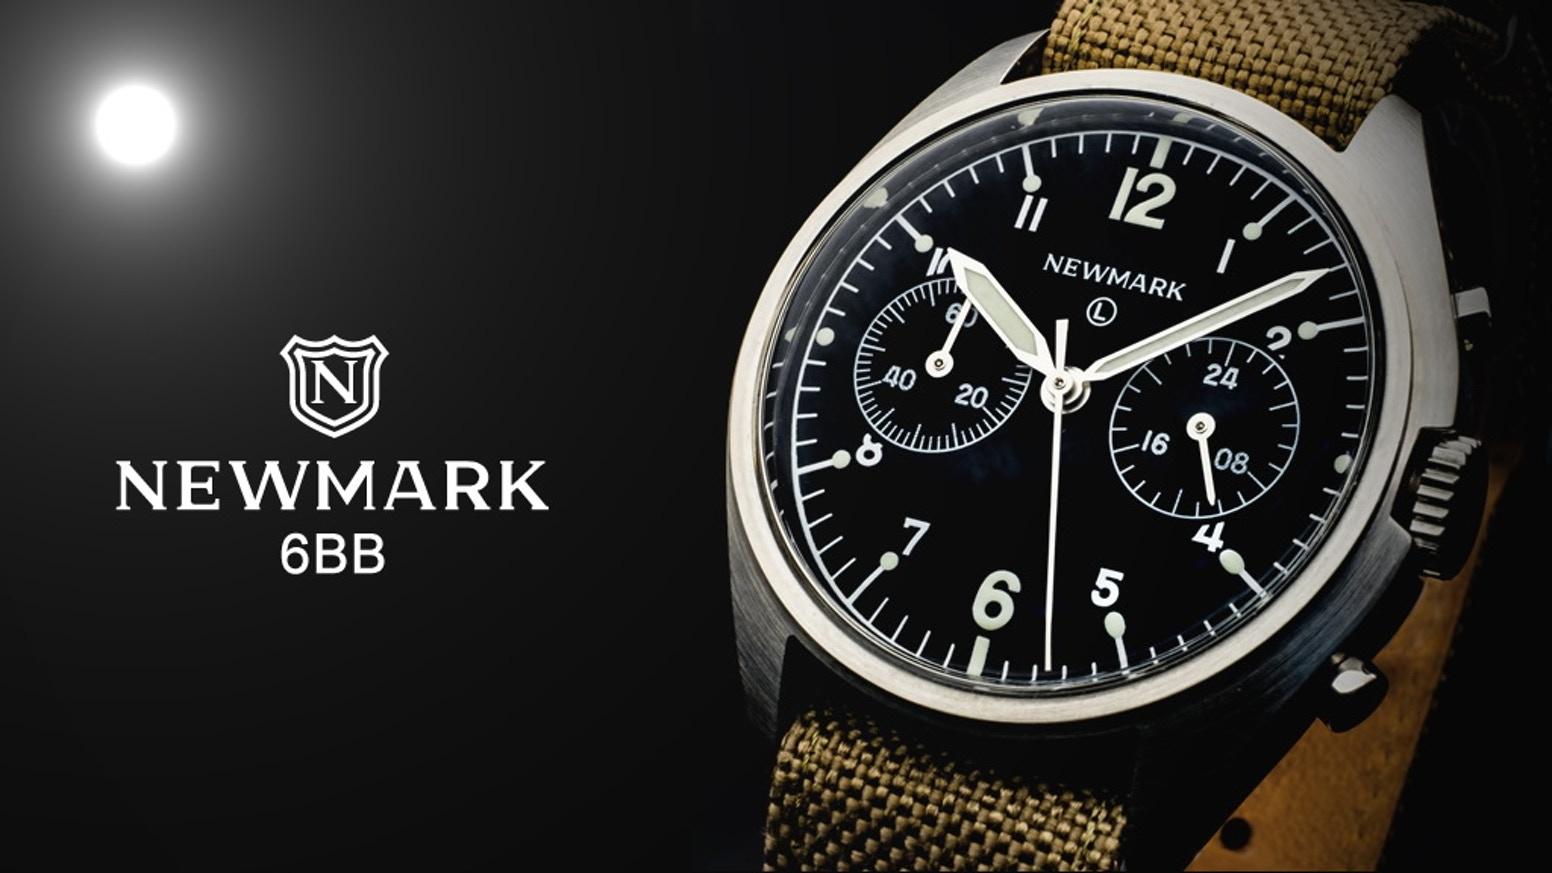 We are recreating the Newmark Chronograph watch issued to RAF pilots in 1980 and making it an everyday watch -  for everyone.